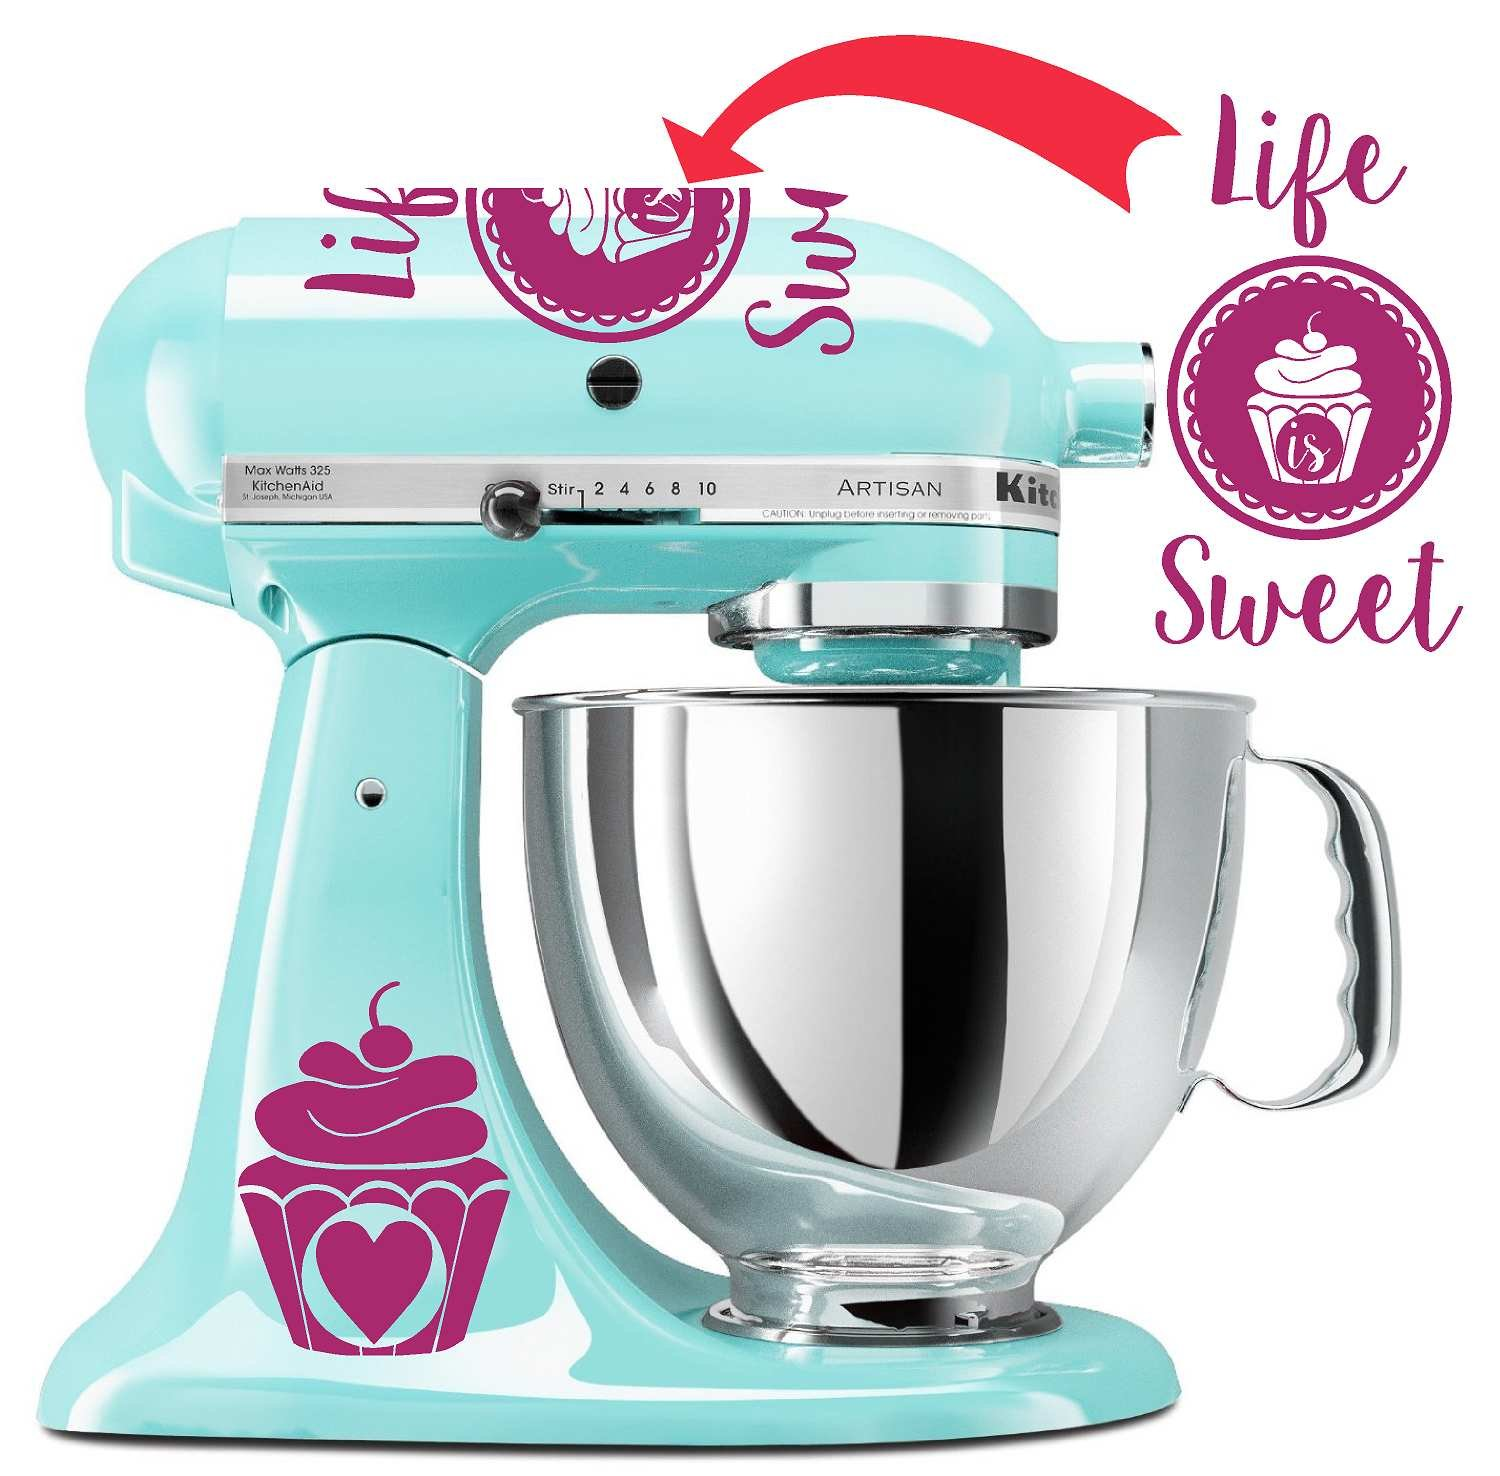 Amazon.com: Life is Sweet Mixer Decal Set (Light Blue): Kitchen & Dining